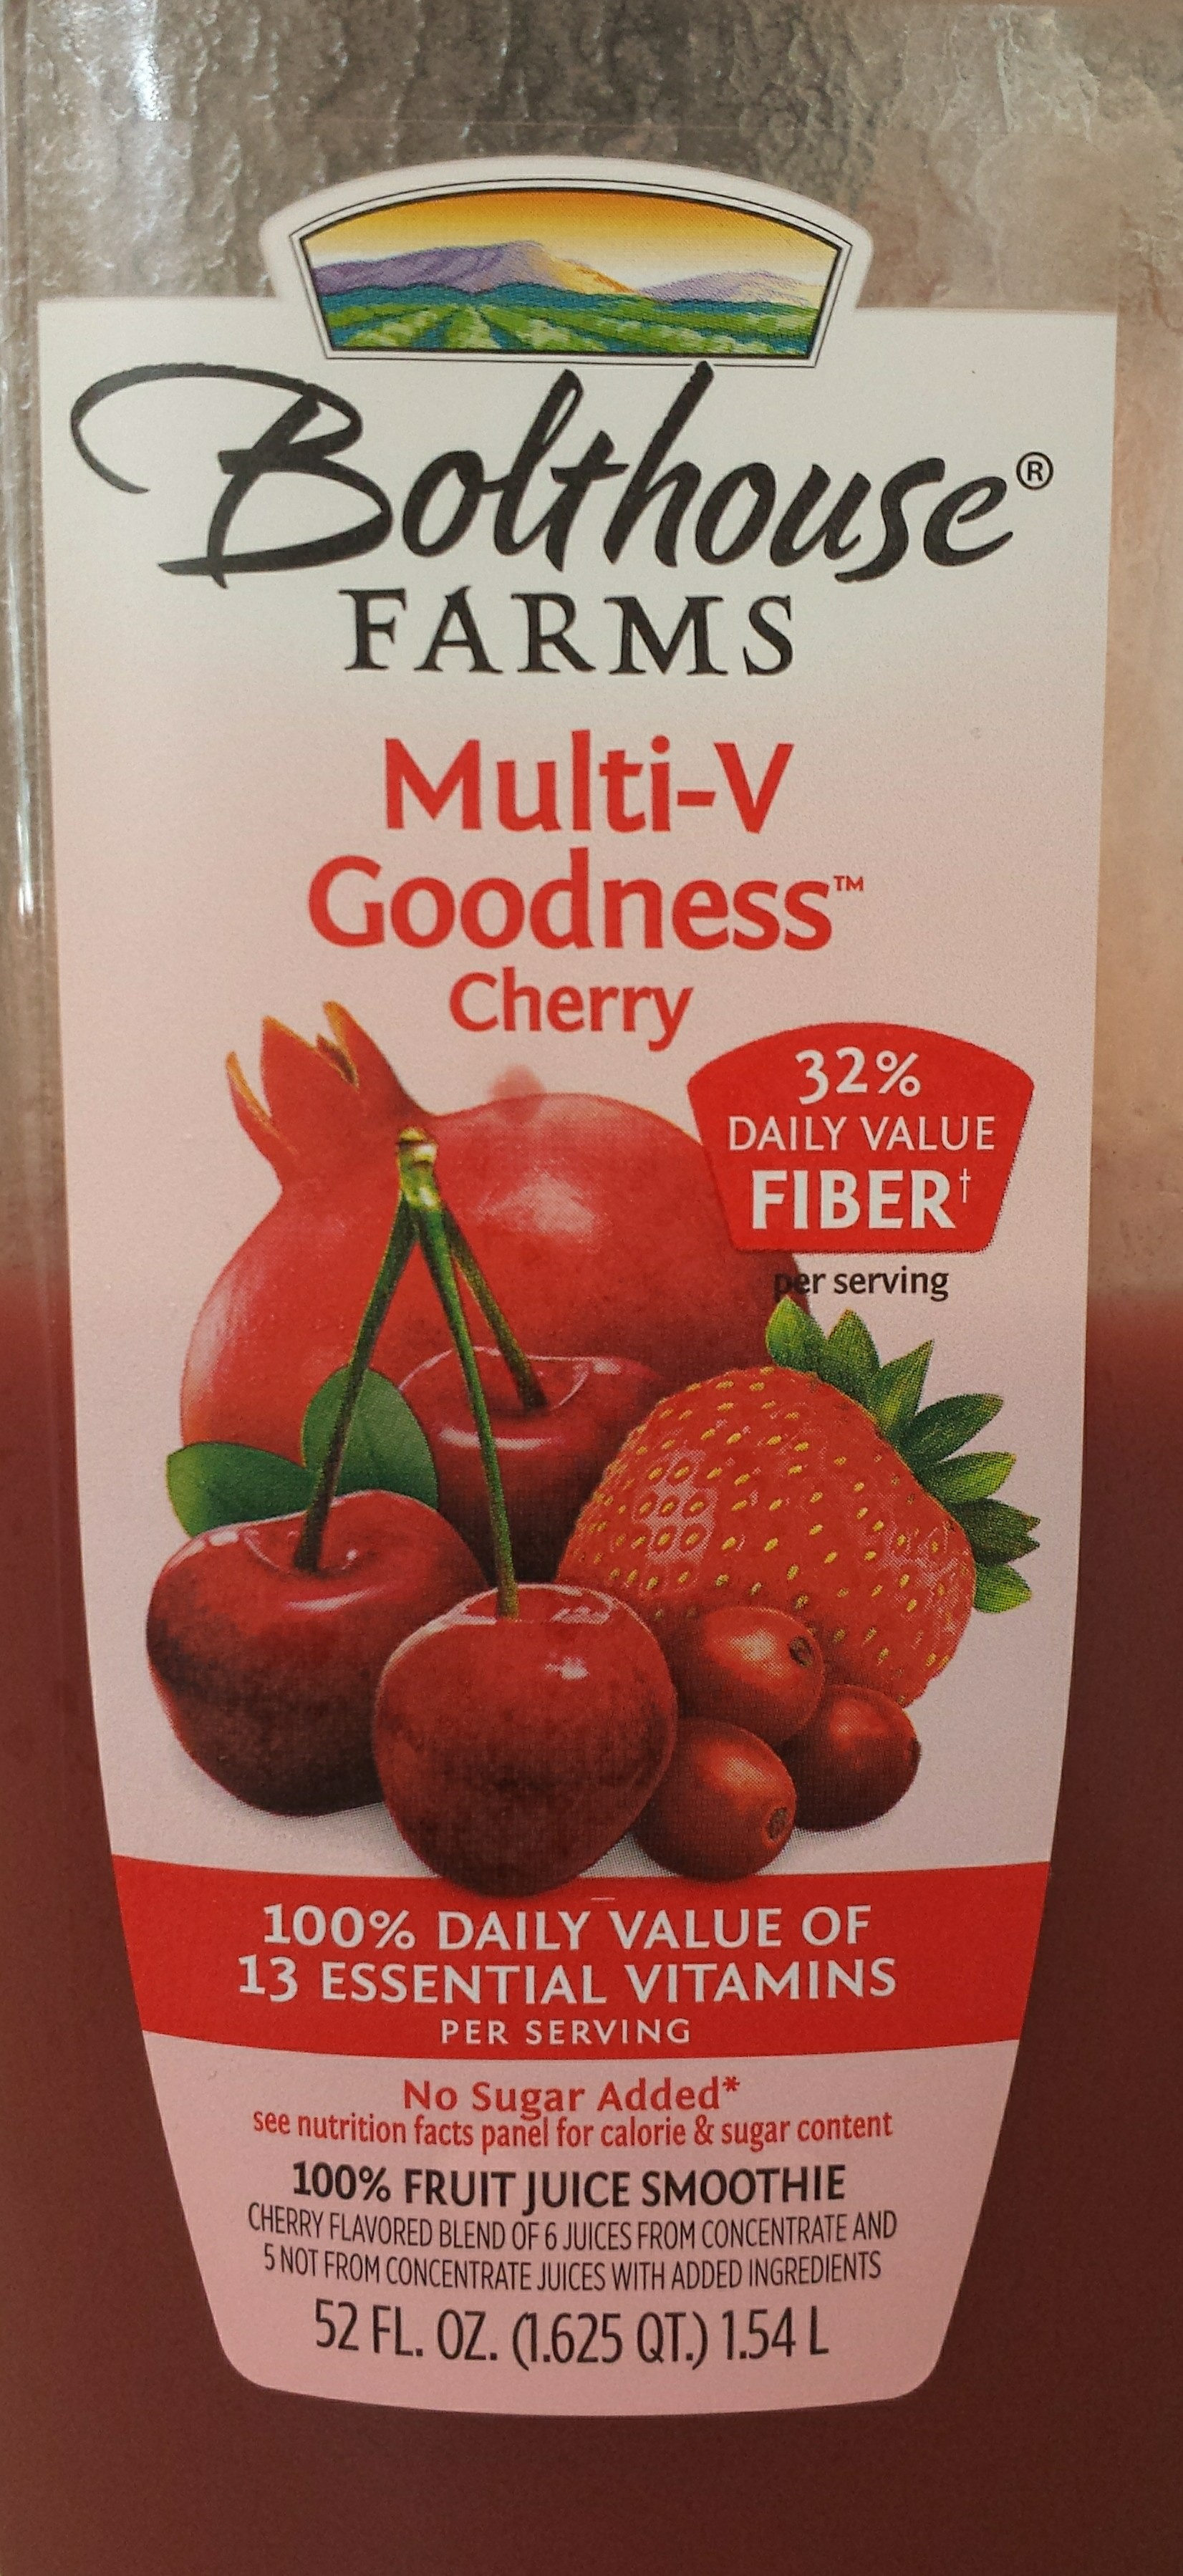 Multi-V Goodness™ Cherry - Product